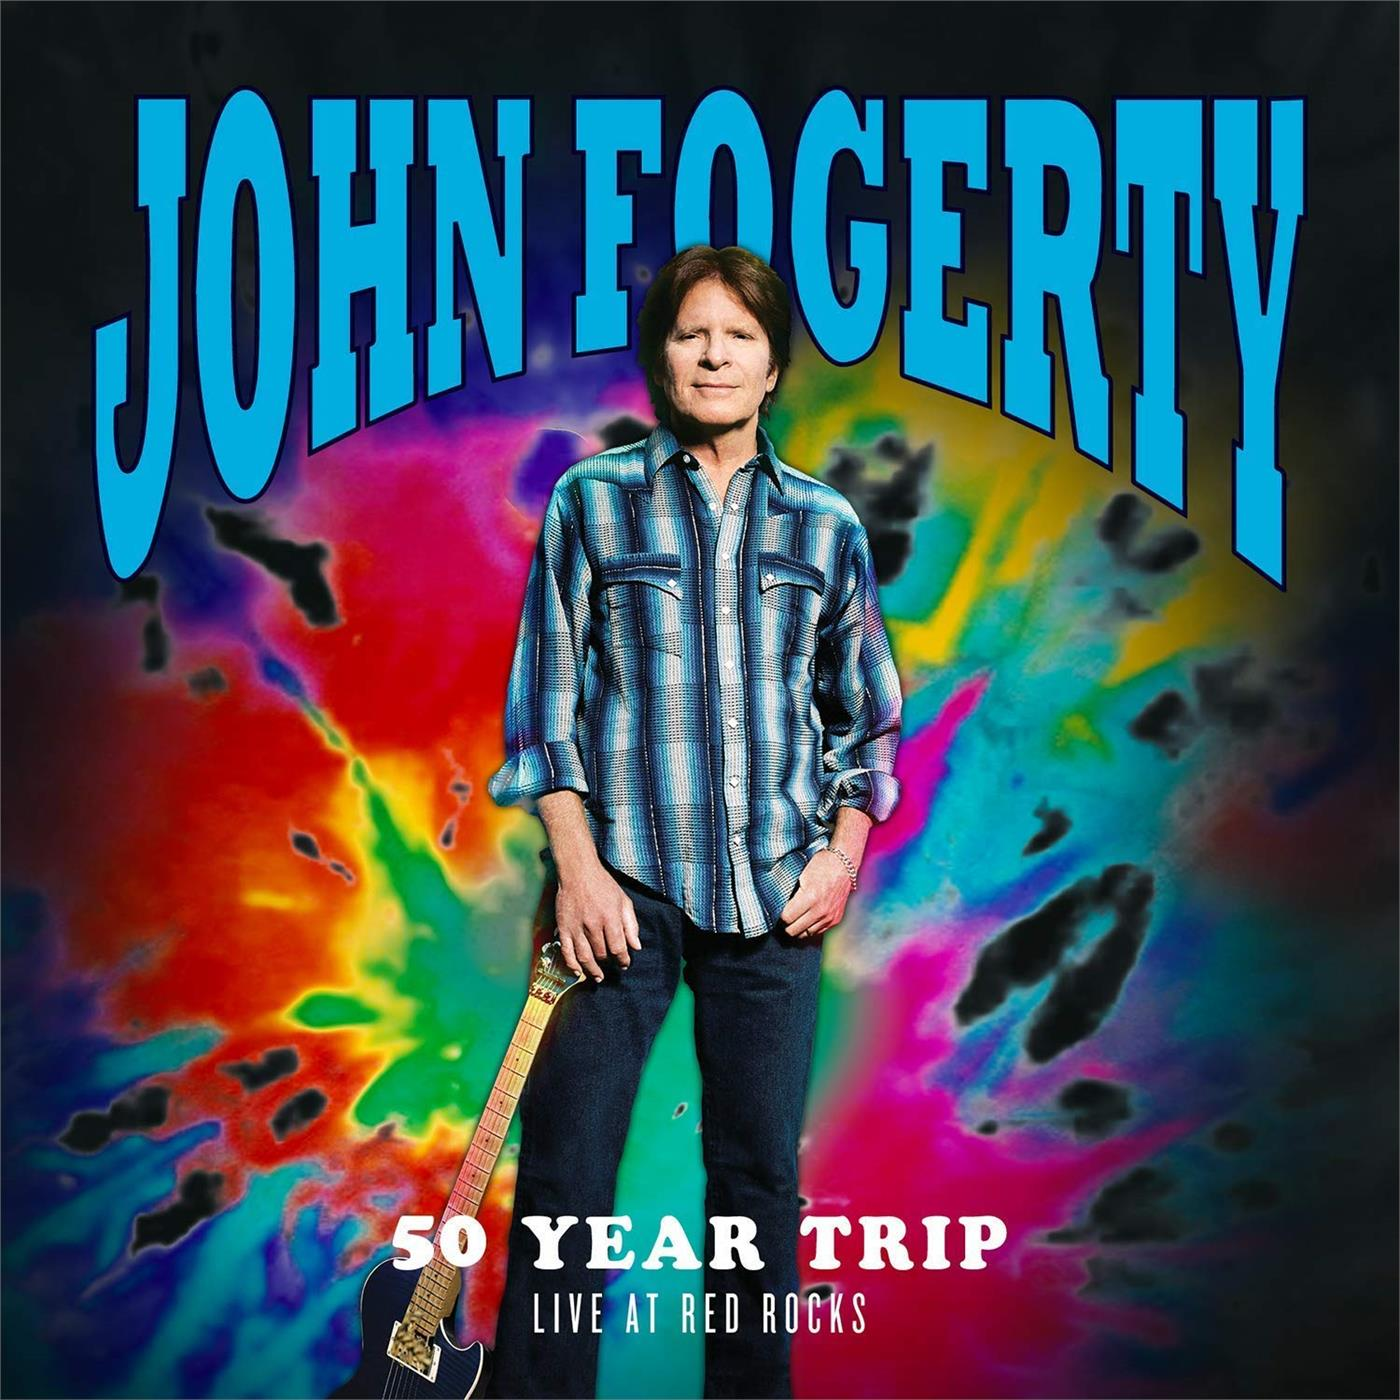 4050538538113 BMG Rights Management  John Fogerty 50 Year Trip: Live At Red Rocks (2LP)